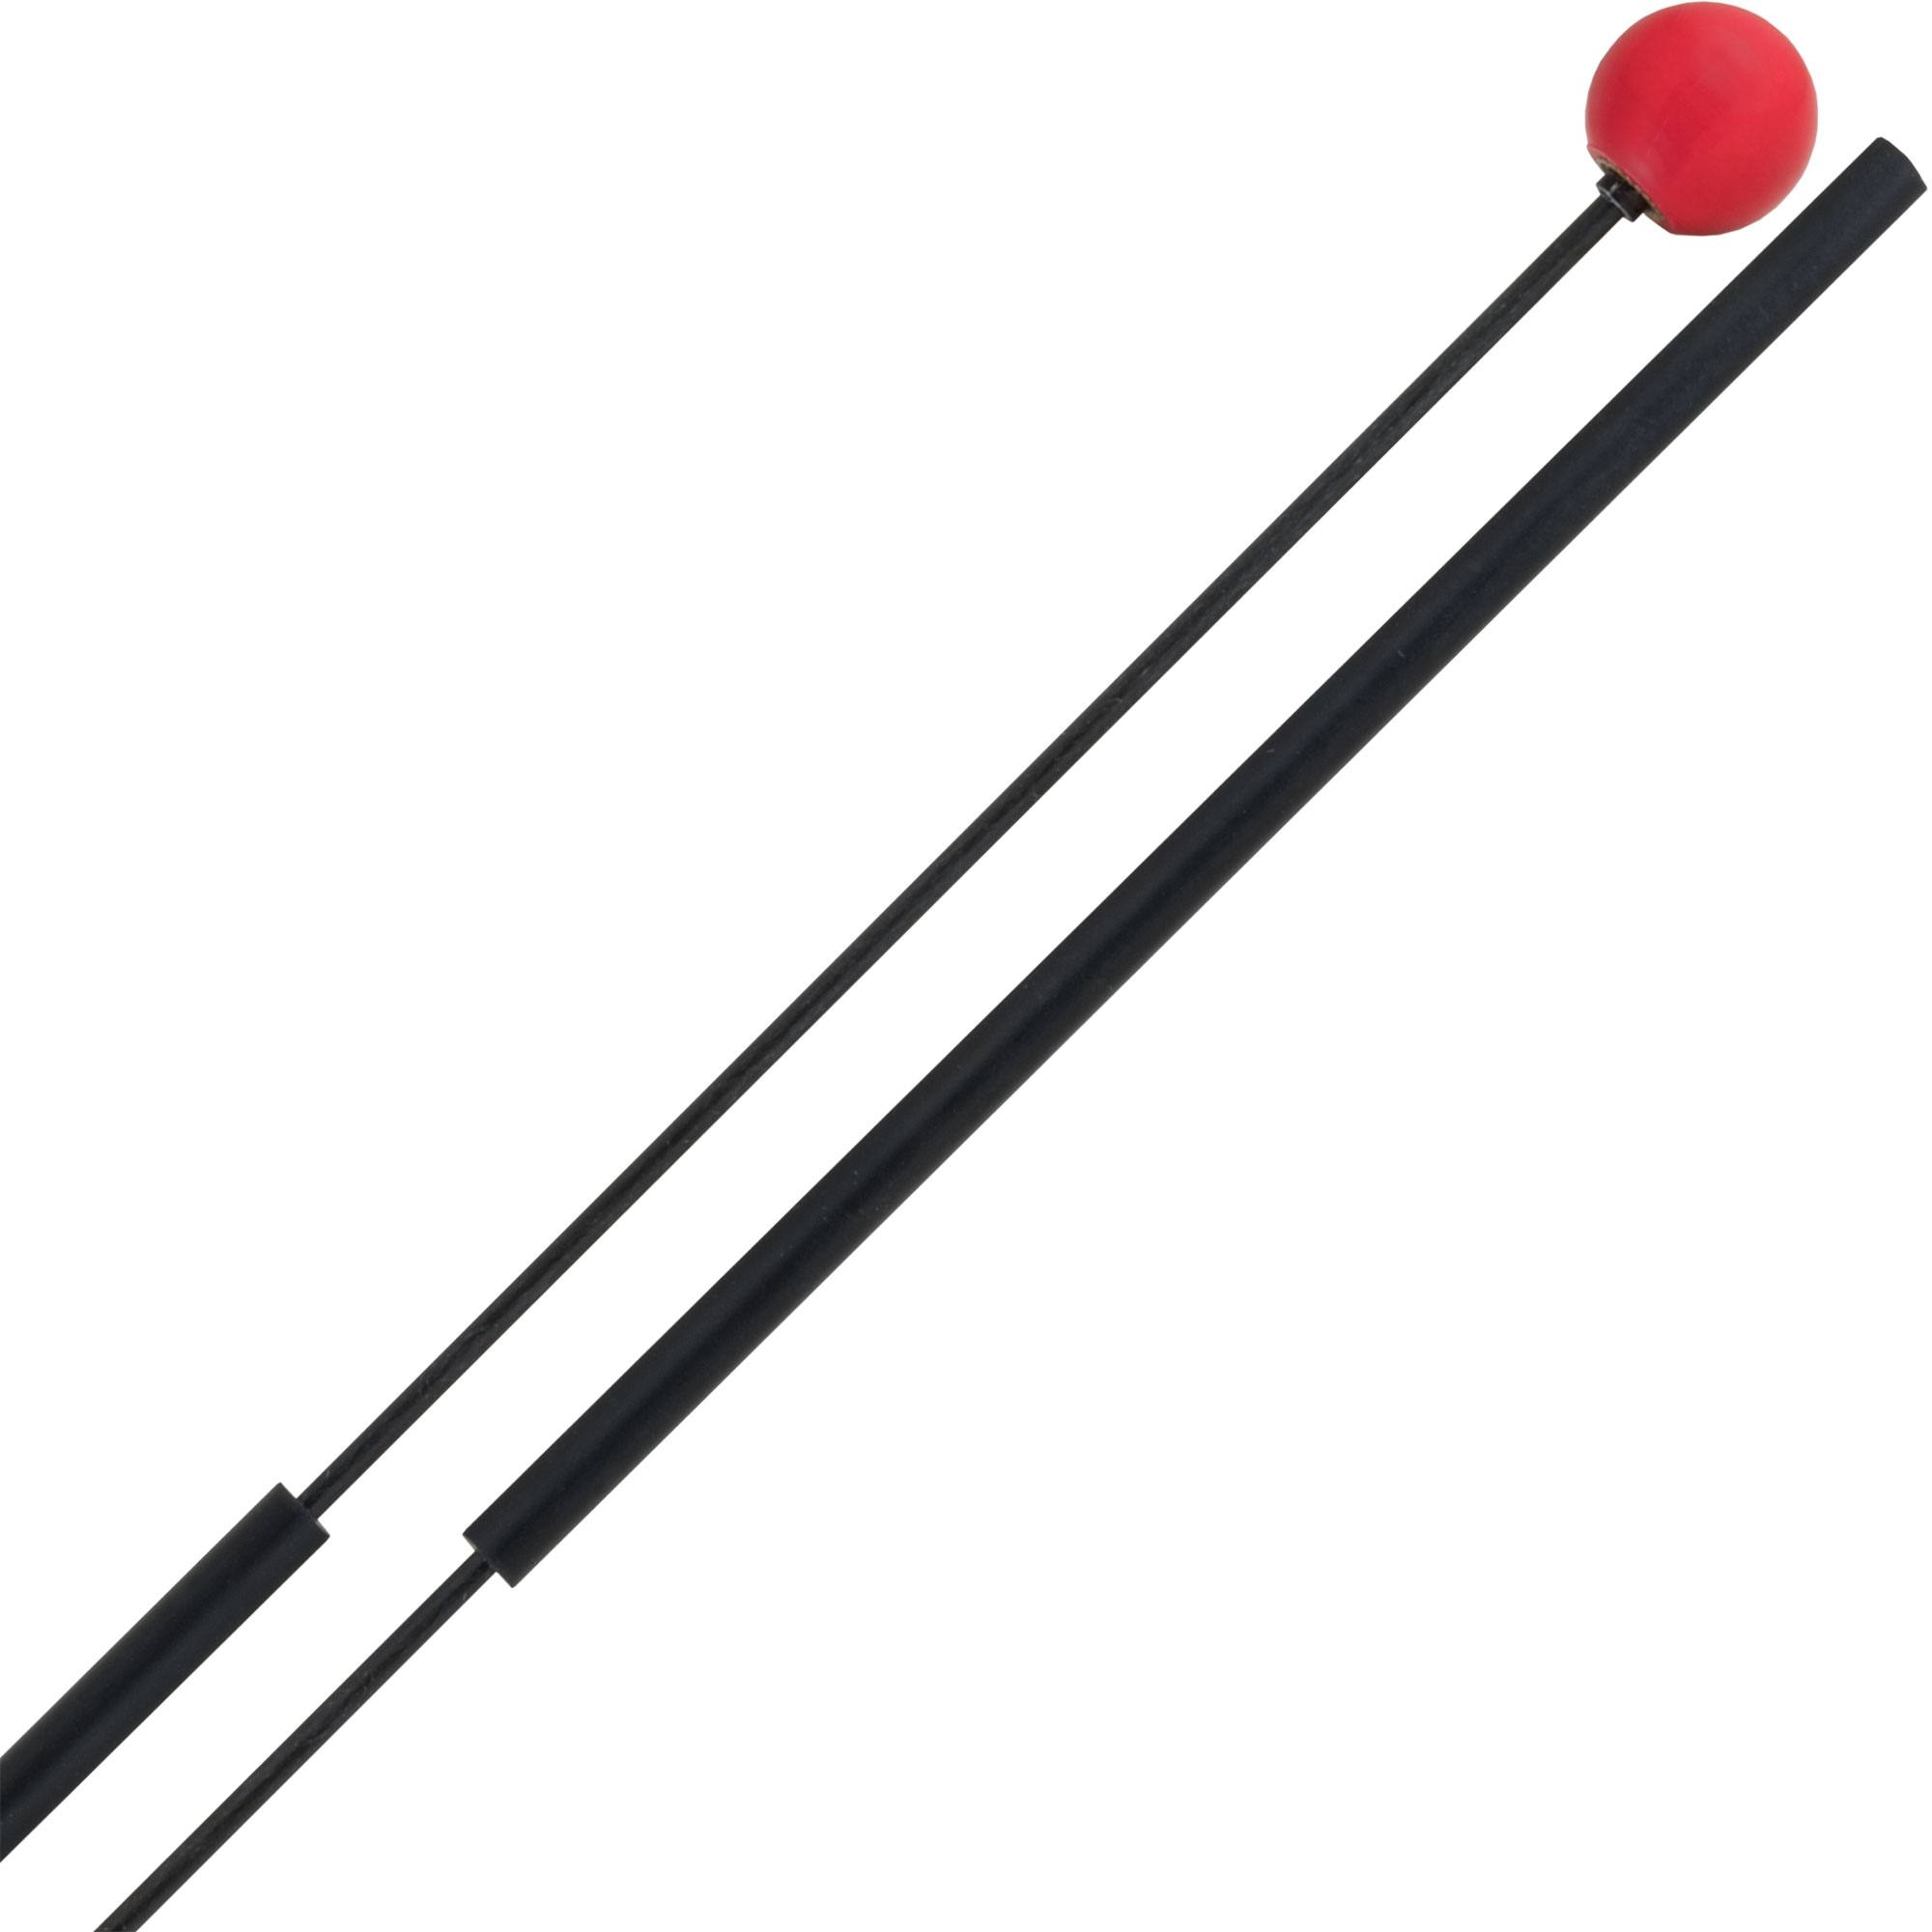 Dragonfly Percussion Heavy Magic Flute Bell Mallets with Fiberglass Handles